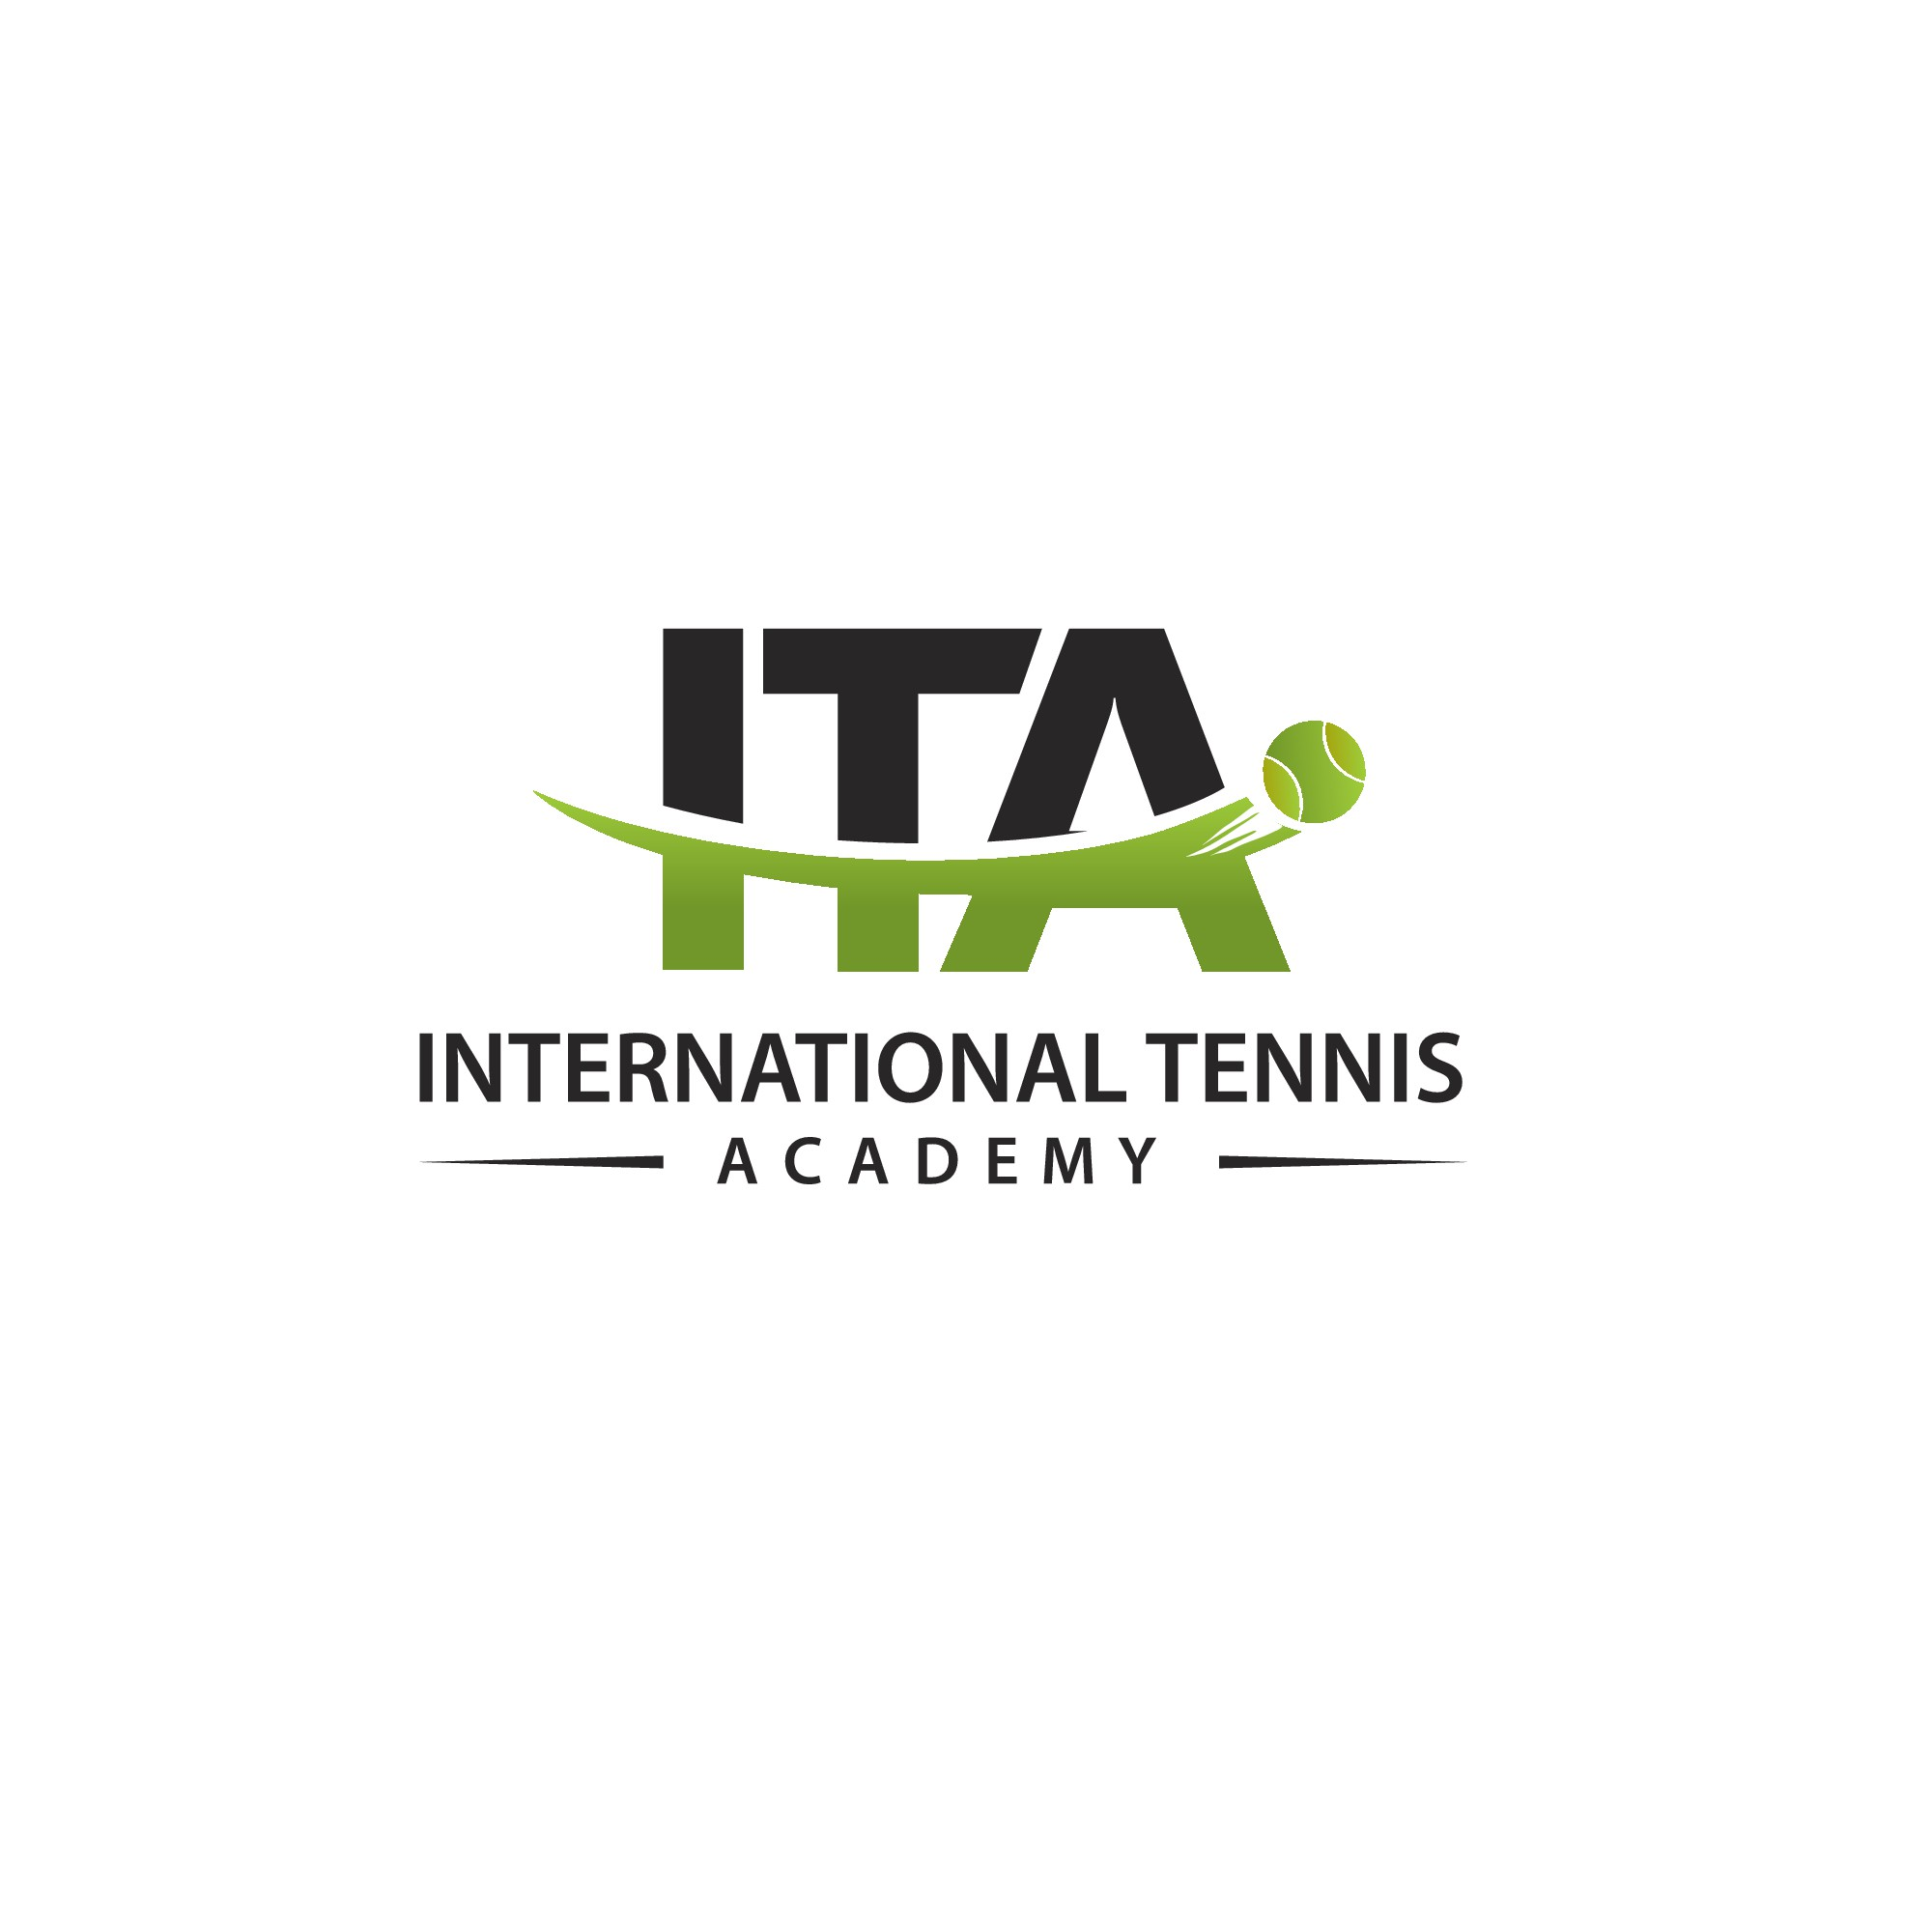 International Tennis Academy needs a logo to attract young Expats